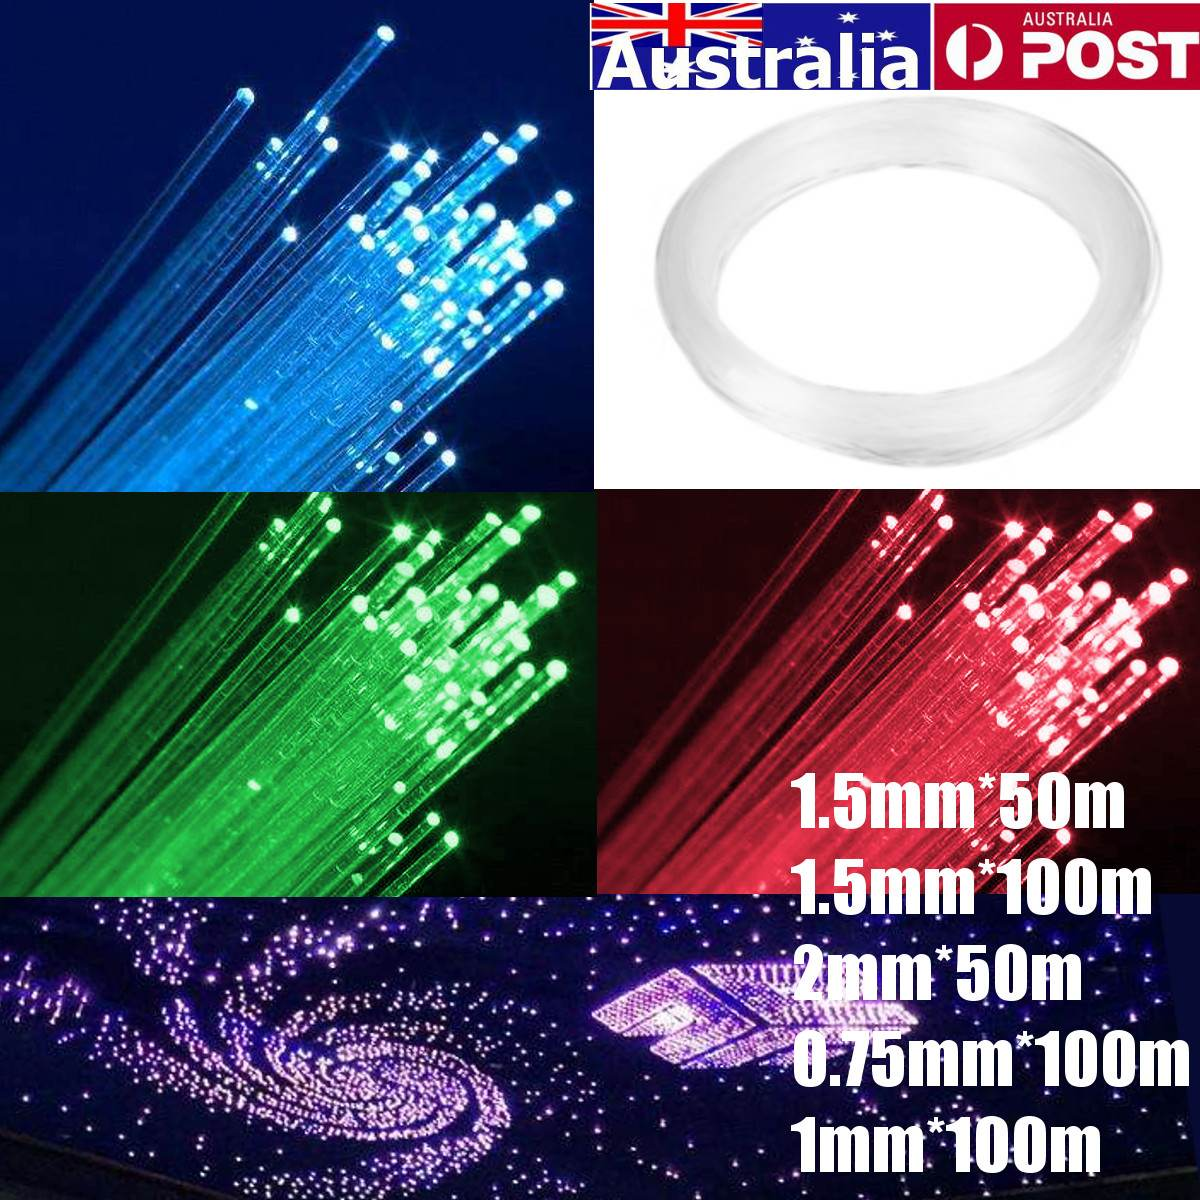 0.75mm/<font><b>1mm</b></font>/1.5mm/2mm PMMA Clear Optic Cable Fiber Light End Grow <font><b>LED</b></font> Light Guide Kit DIY Holiday Festival Commercial Lighting image